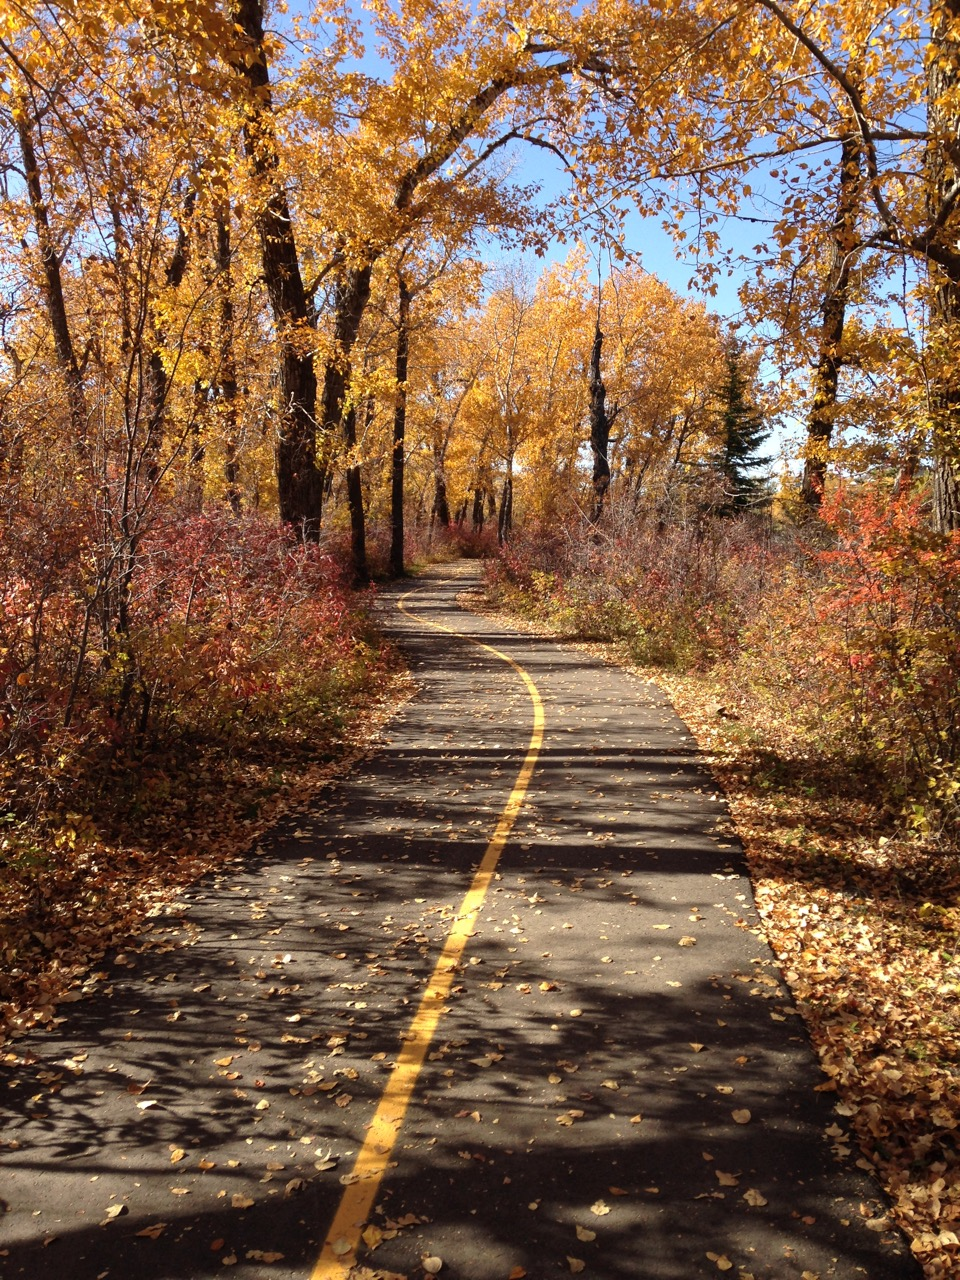 Calgary boast one of the largest urban pathways networks in the world.